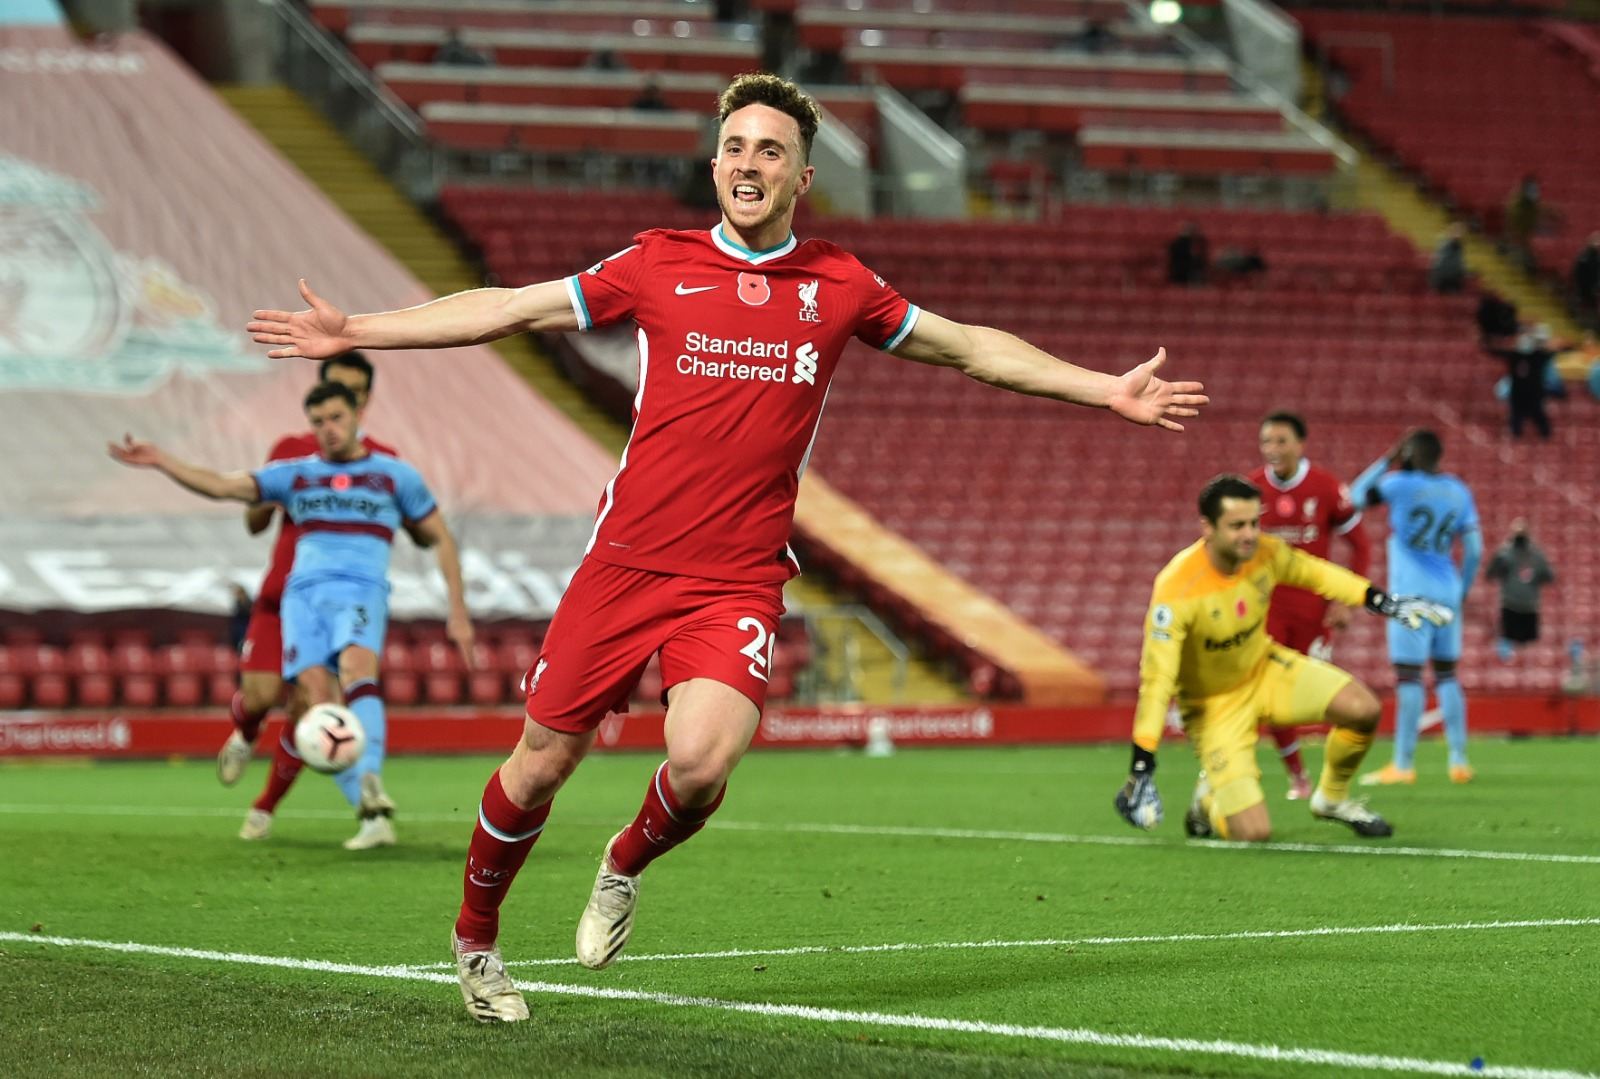 ROBERTSON BACK FOR CHELSEA CLASH